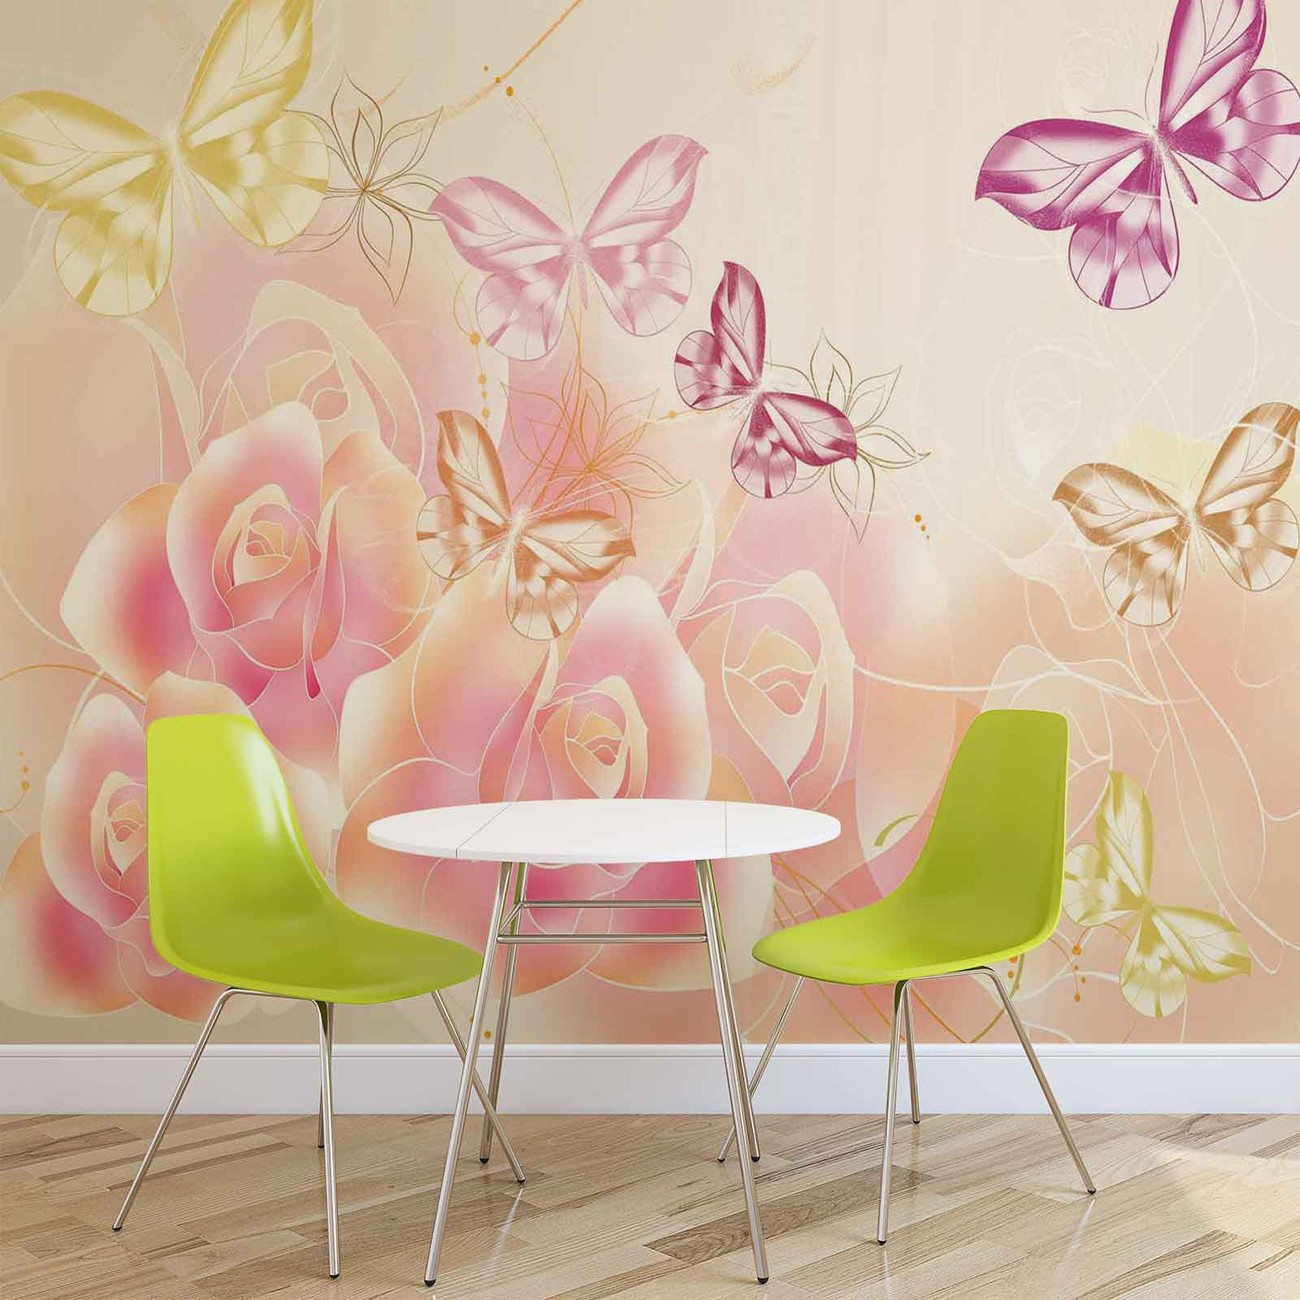 Butterflies flowers roses wall paper mural buy at for Mural of flowers